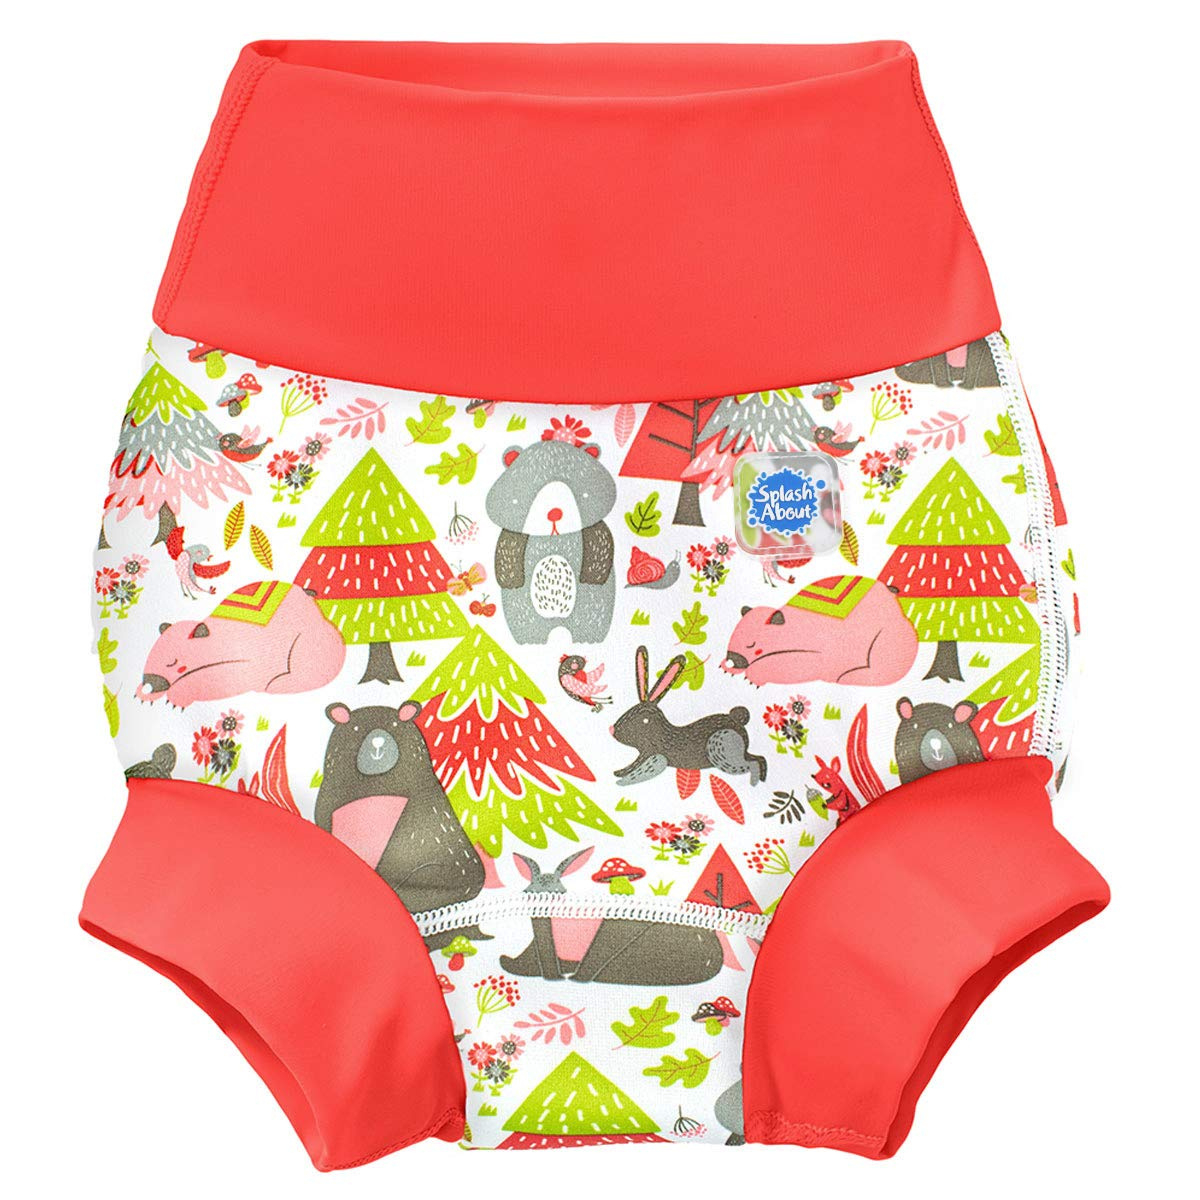 Splash About Baby Kids New Improved Happy Nappy,Multicoloured Dino Pirates ,12-24 months